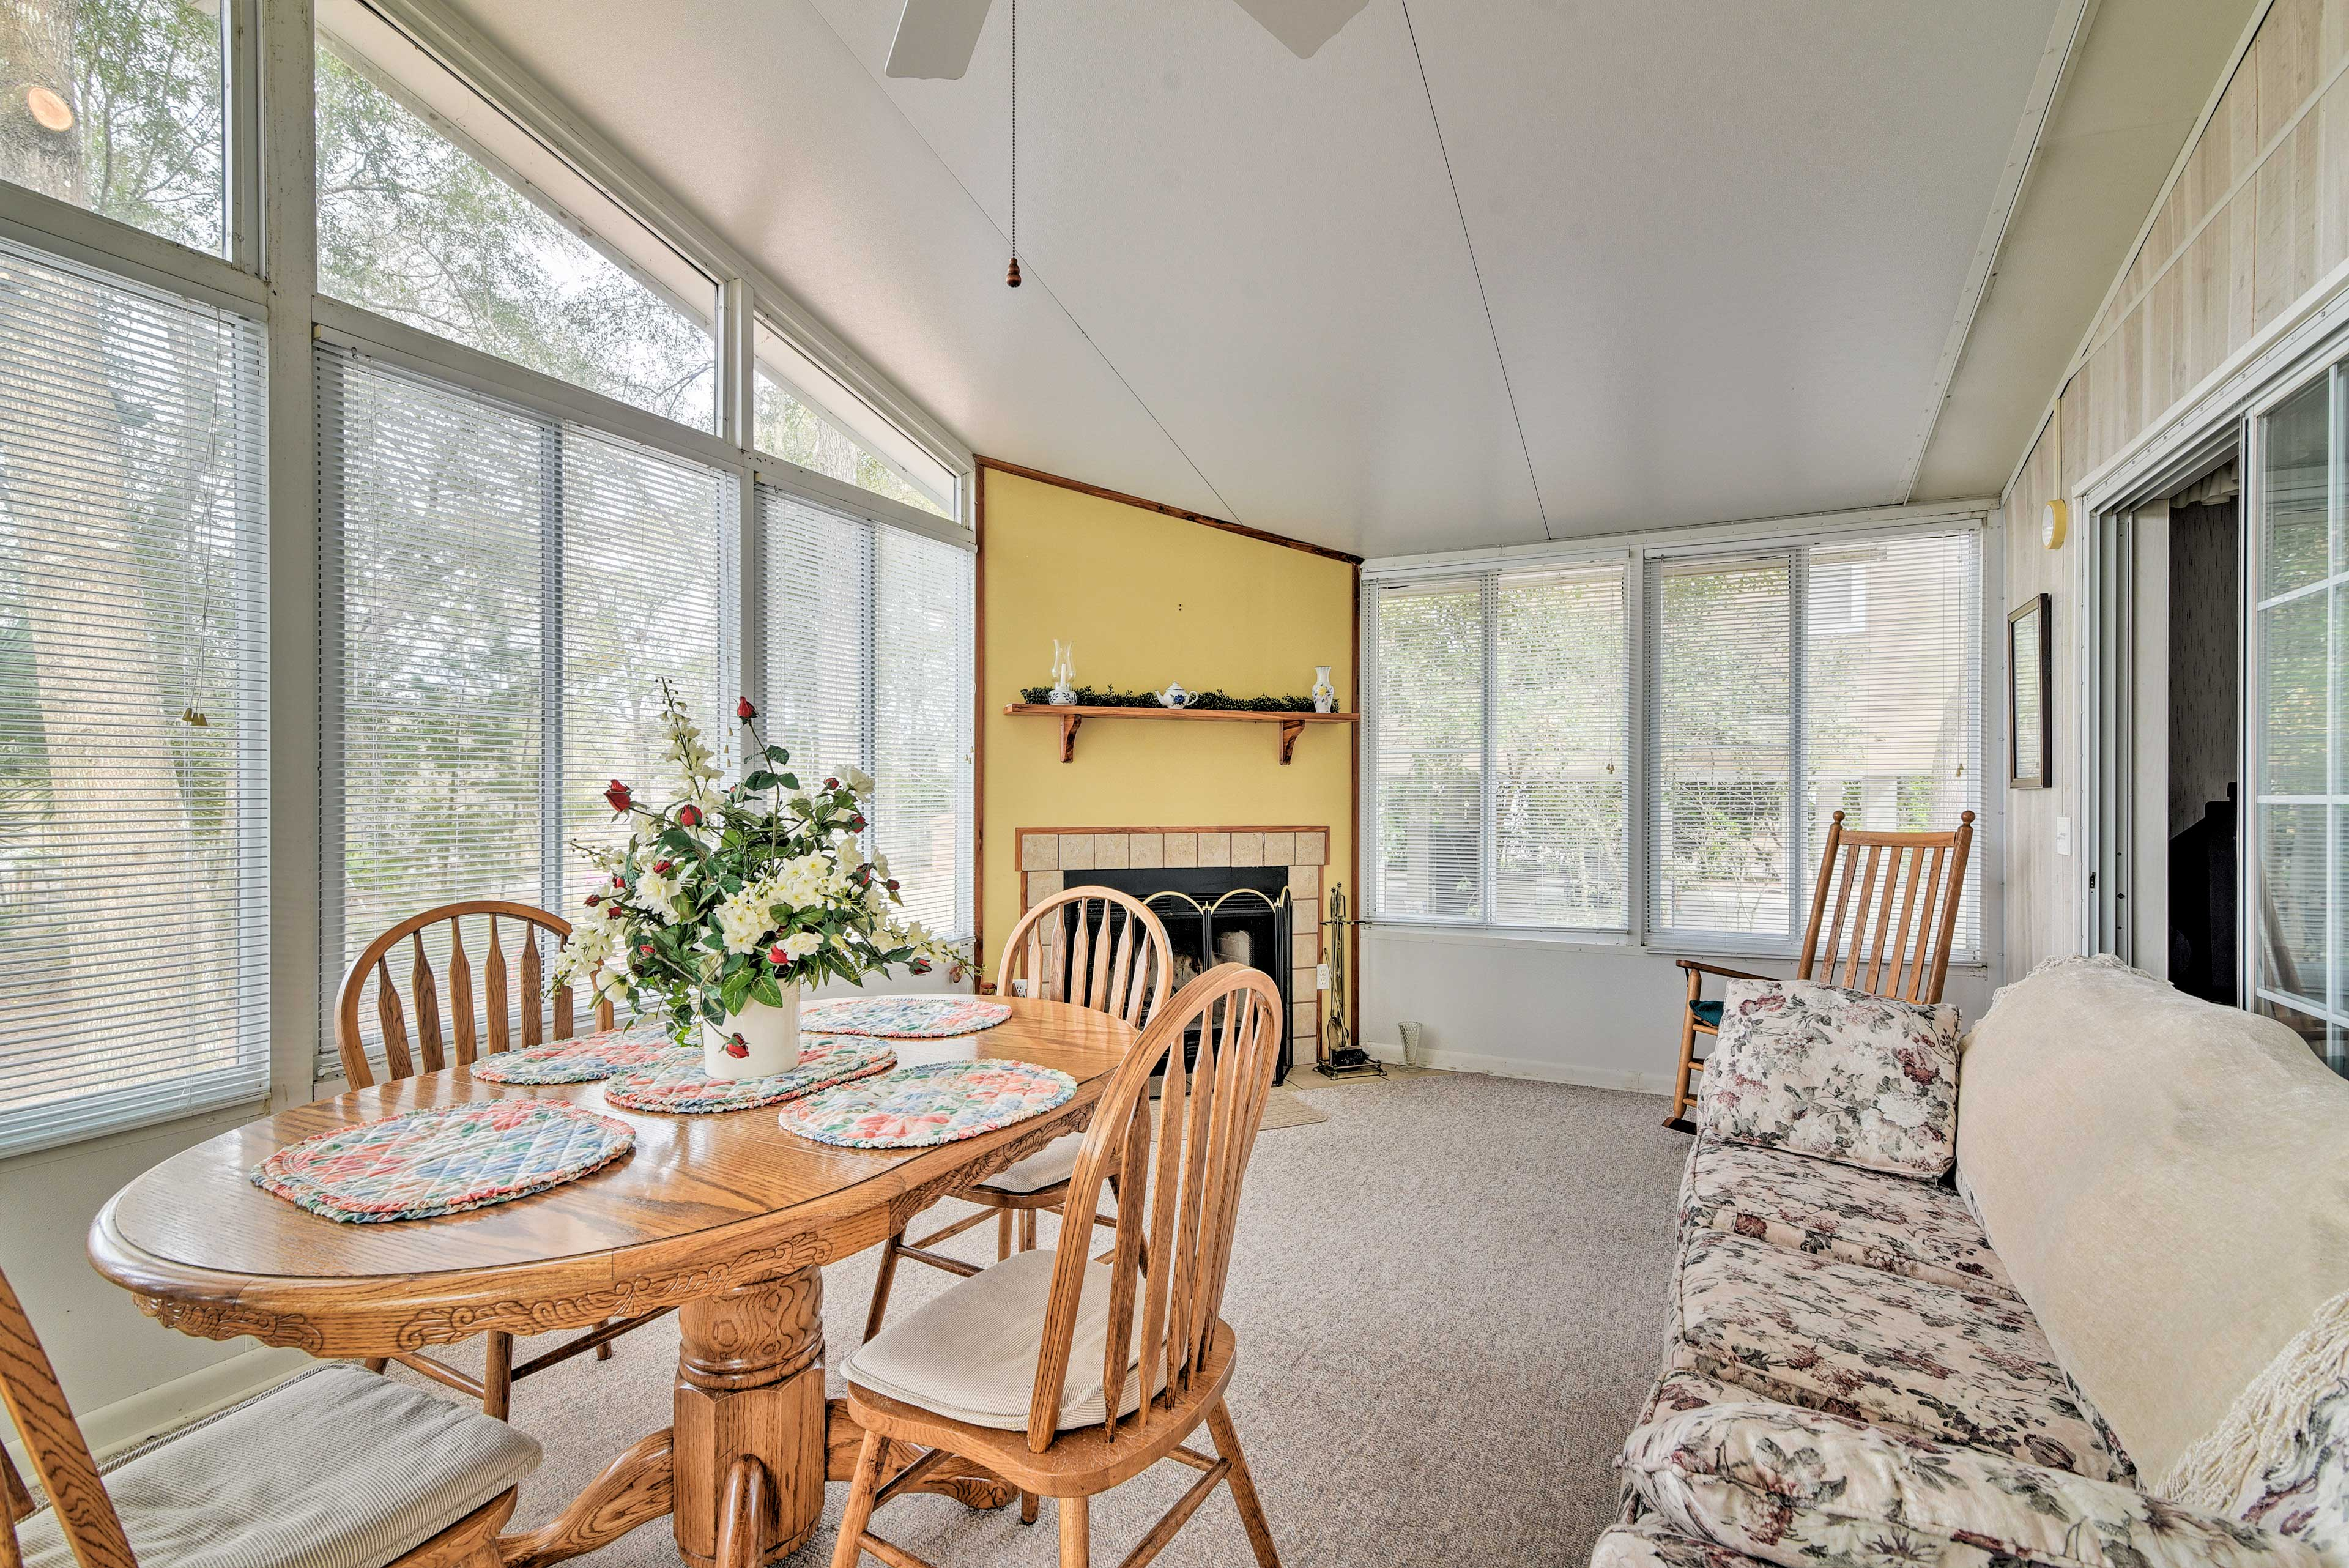 This bright sunroom is ideal for enjoying meals in this quaint home!